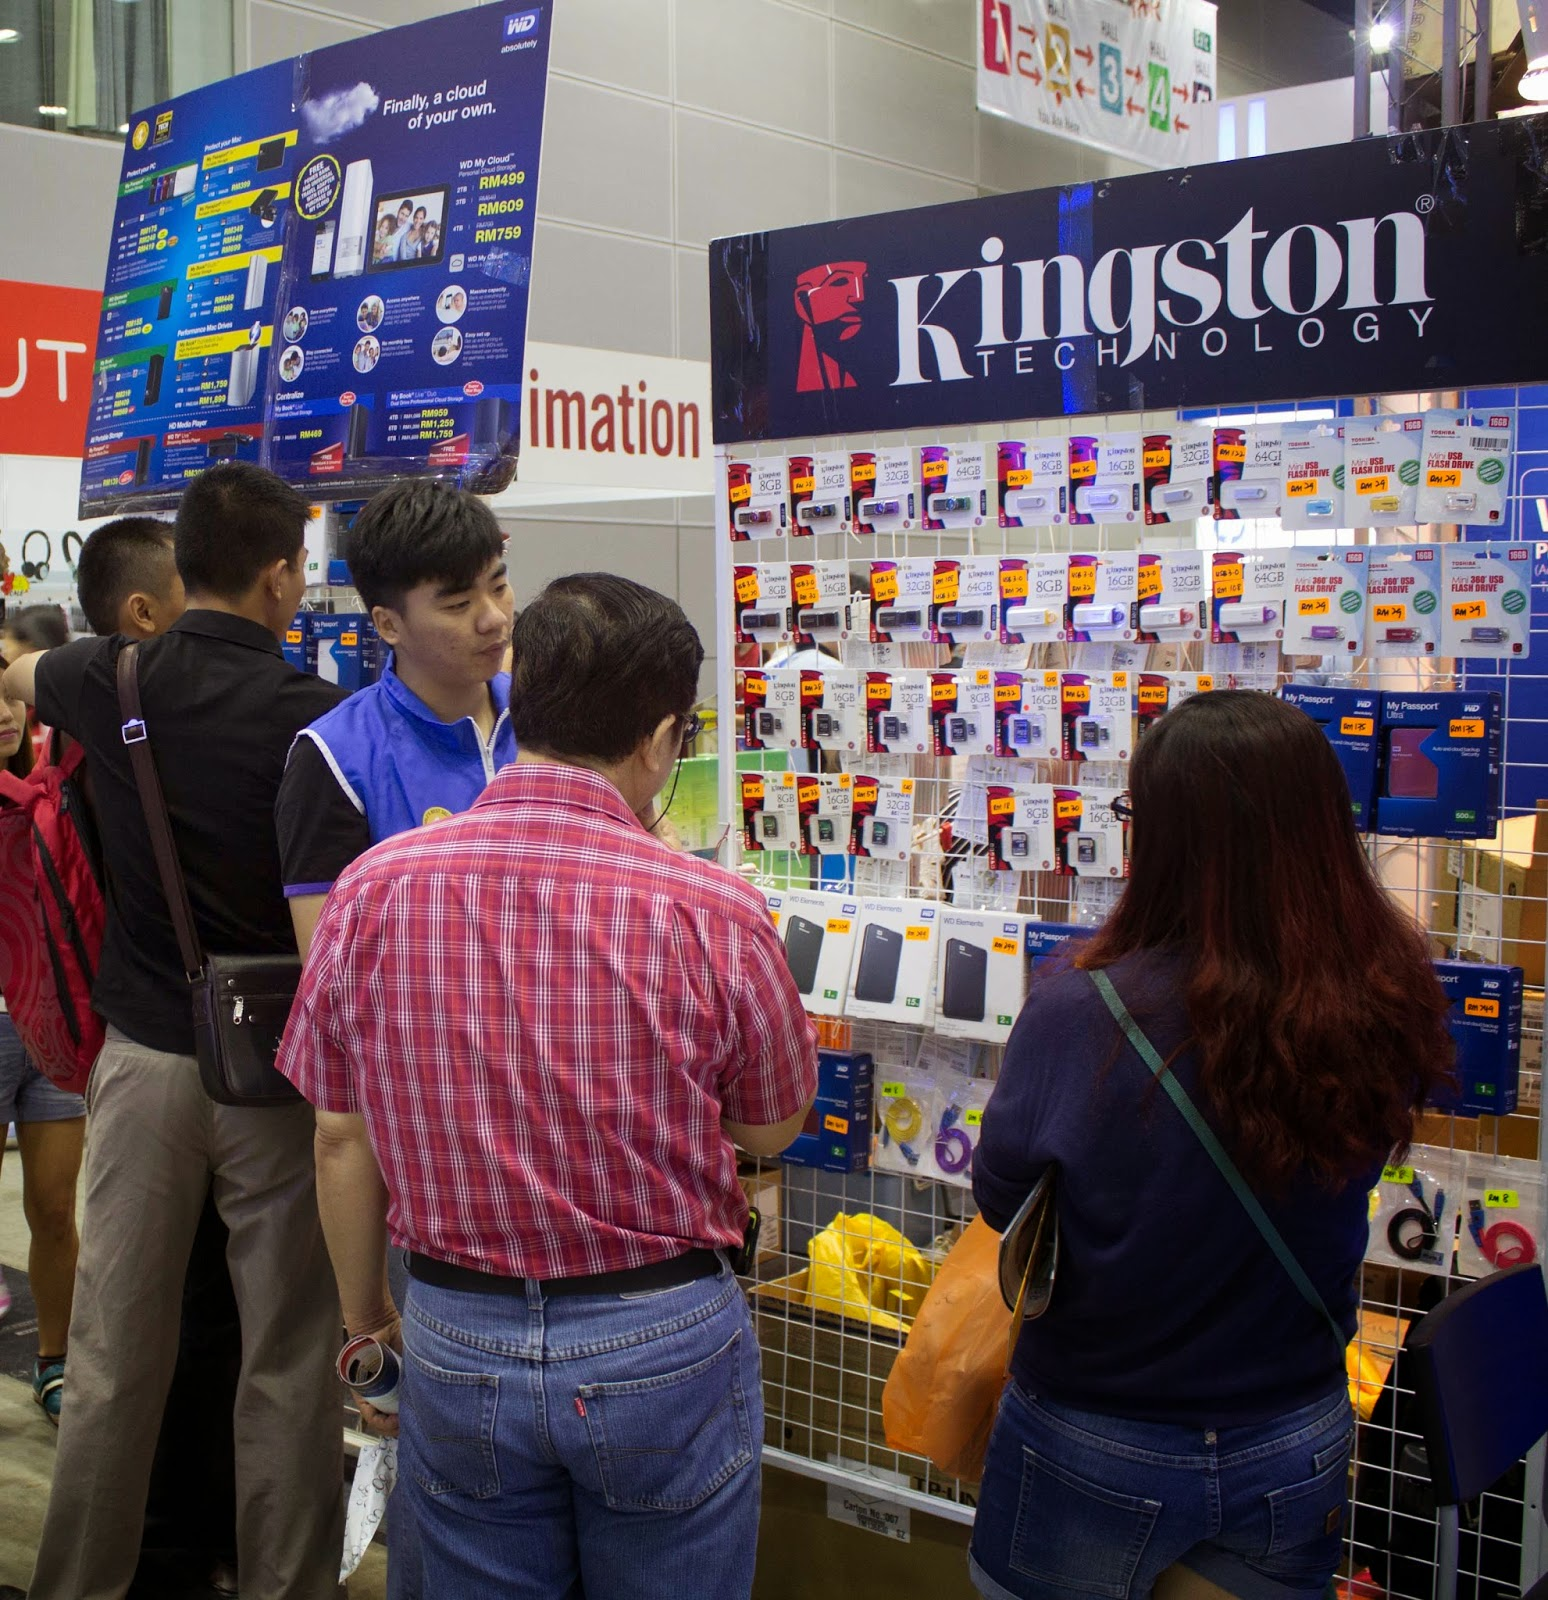 Coverage of PIKOM PC Fair 2014 @ Kuala Lumpur Convention Center 329